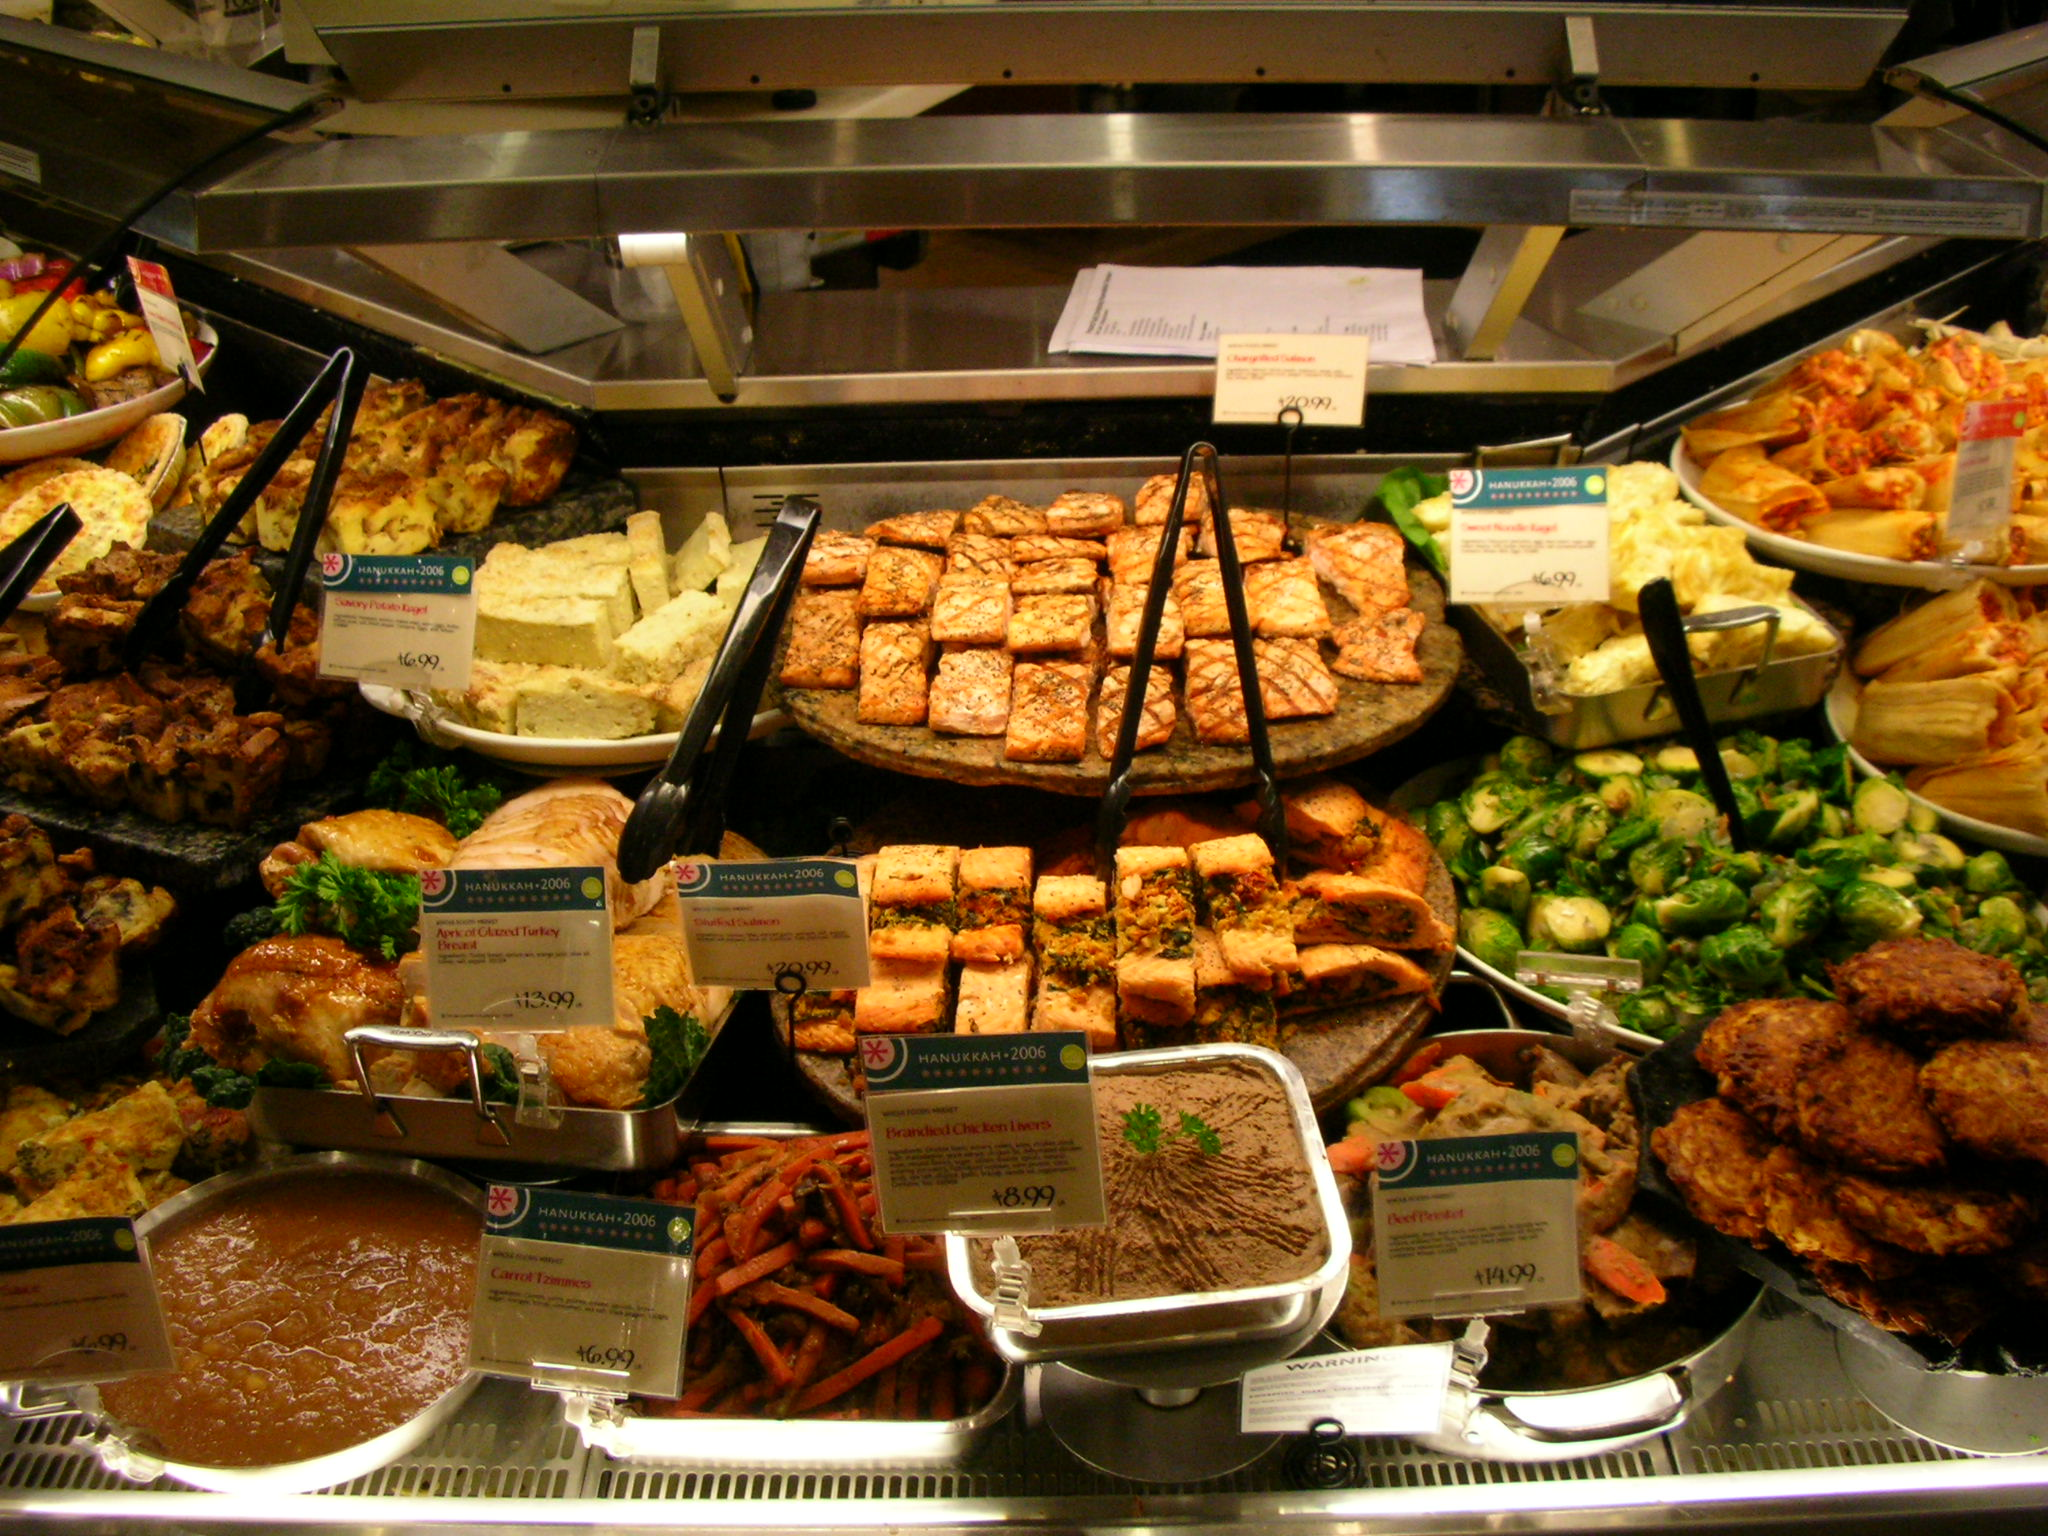 File:Hanukkah dishes.jpg